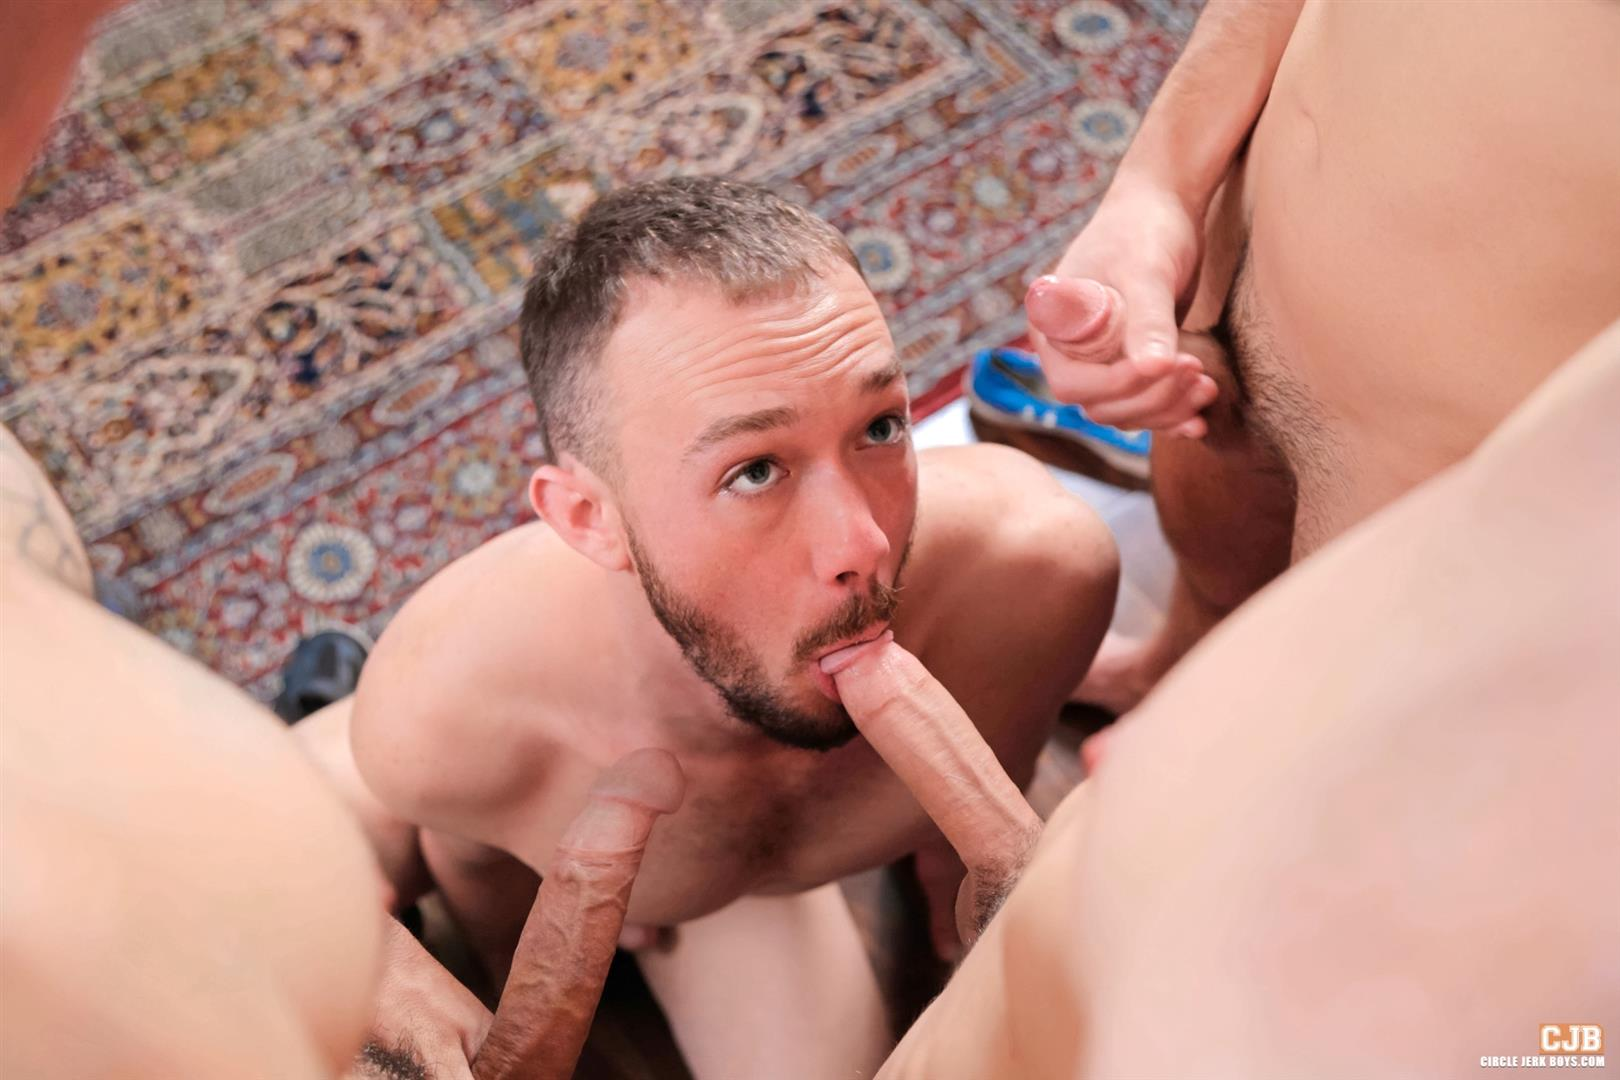 Circle Jerk Boys Kirk Cummings and Trent Jackson and Jake Jammer and Blake Stone Cock Sucking Young Guys Amateur Gay Porn 13 4 Hard Cocks, 4 Young Men, 4 Cock Suckers, 4 Loads Of Cum